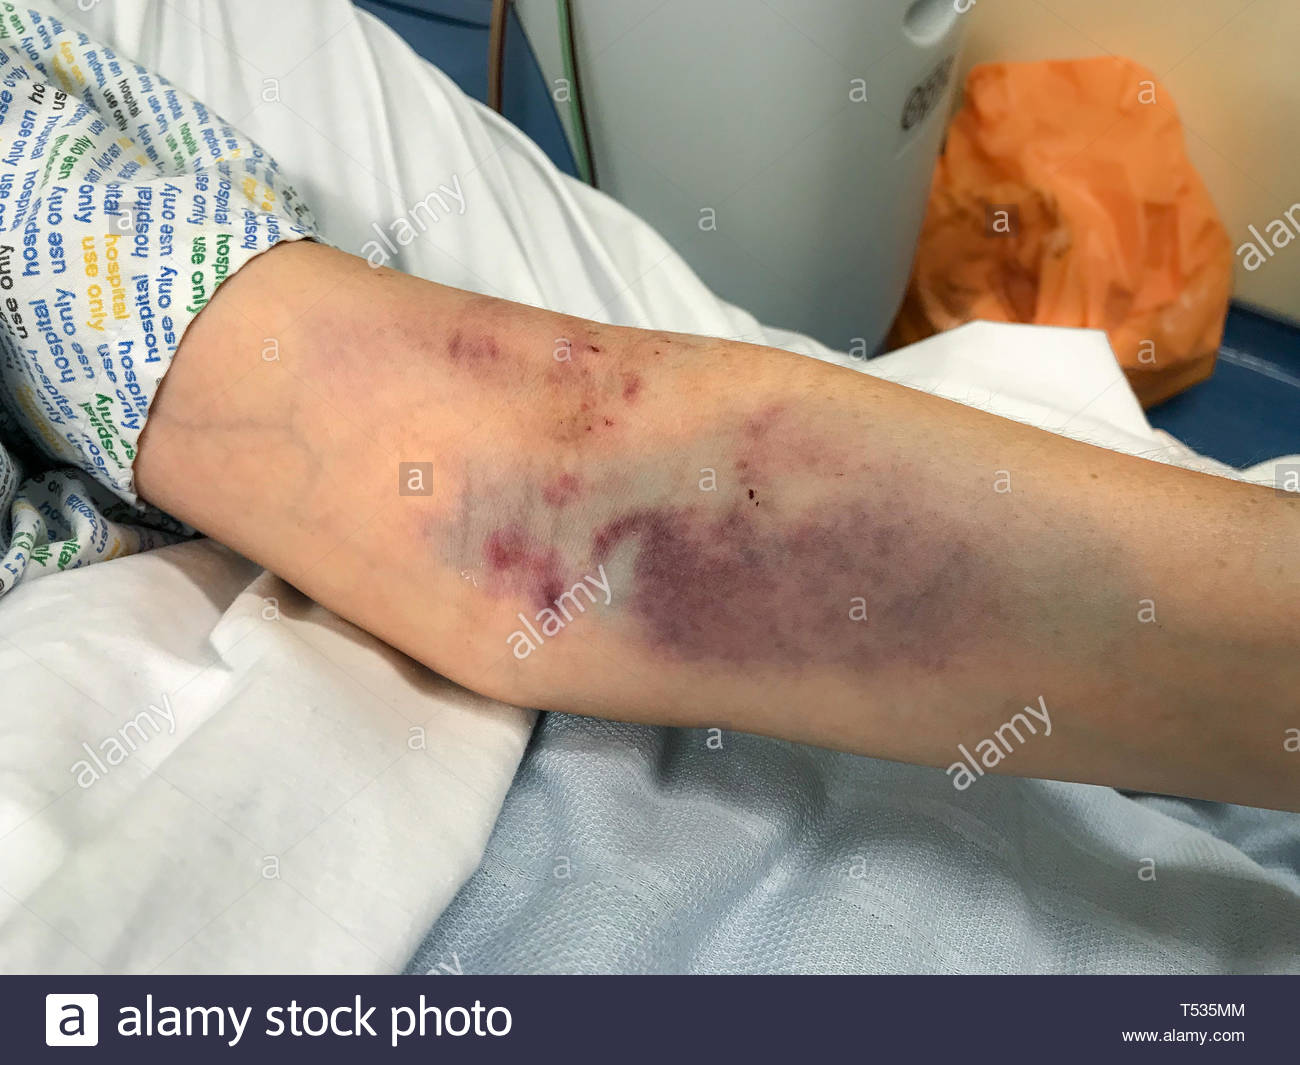 A close up of a woman's arm badly bruised from several attempts at drawing blood, the edge of the hospital gown can just be seen - Stock Image